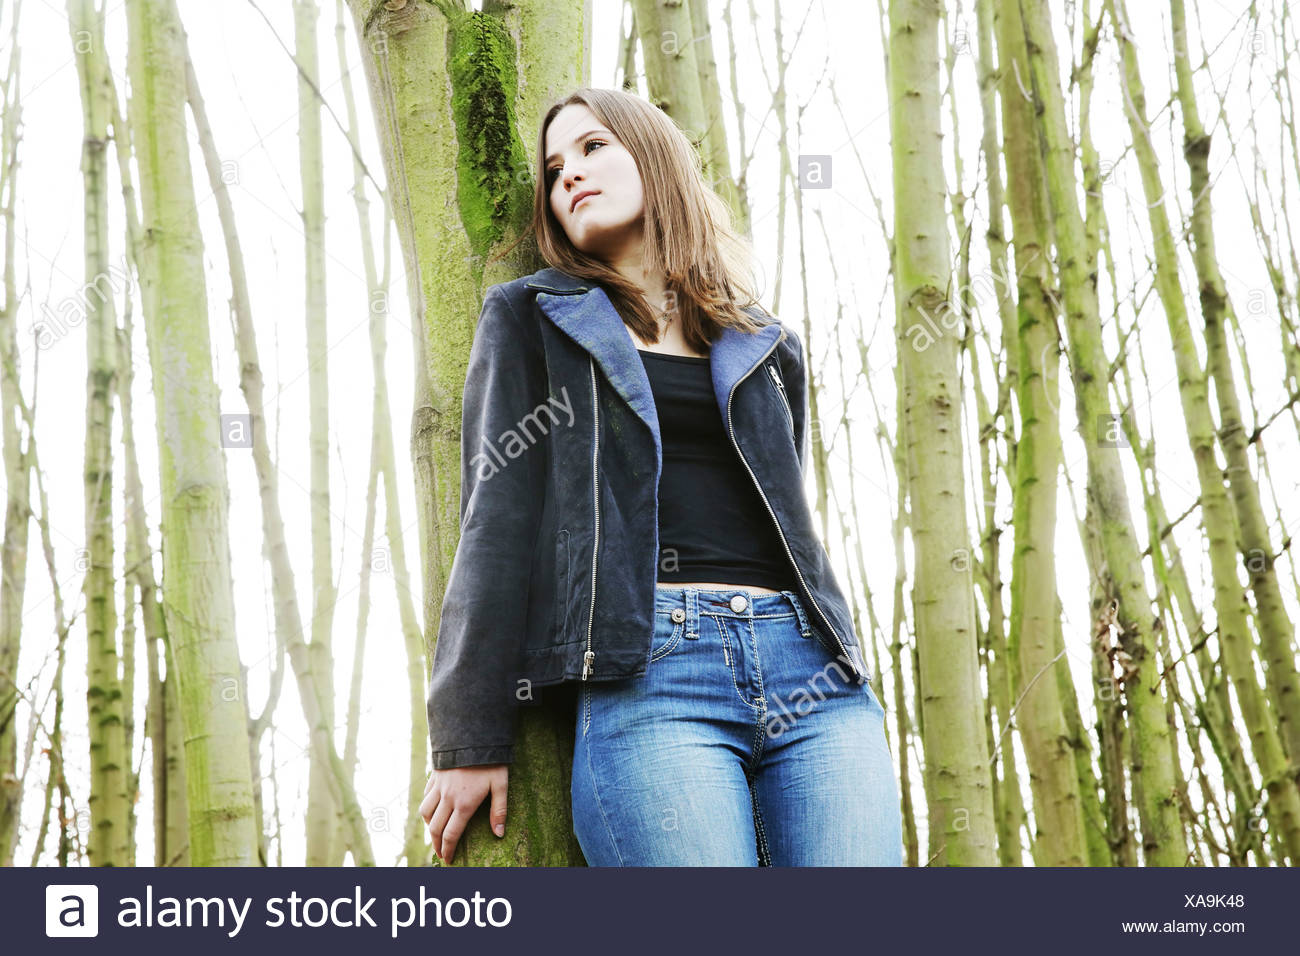 Portrait of teenage girl leaning against tree trunk - Stock Image